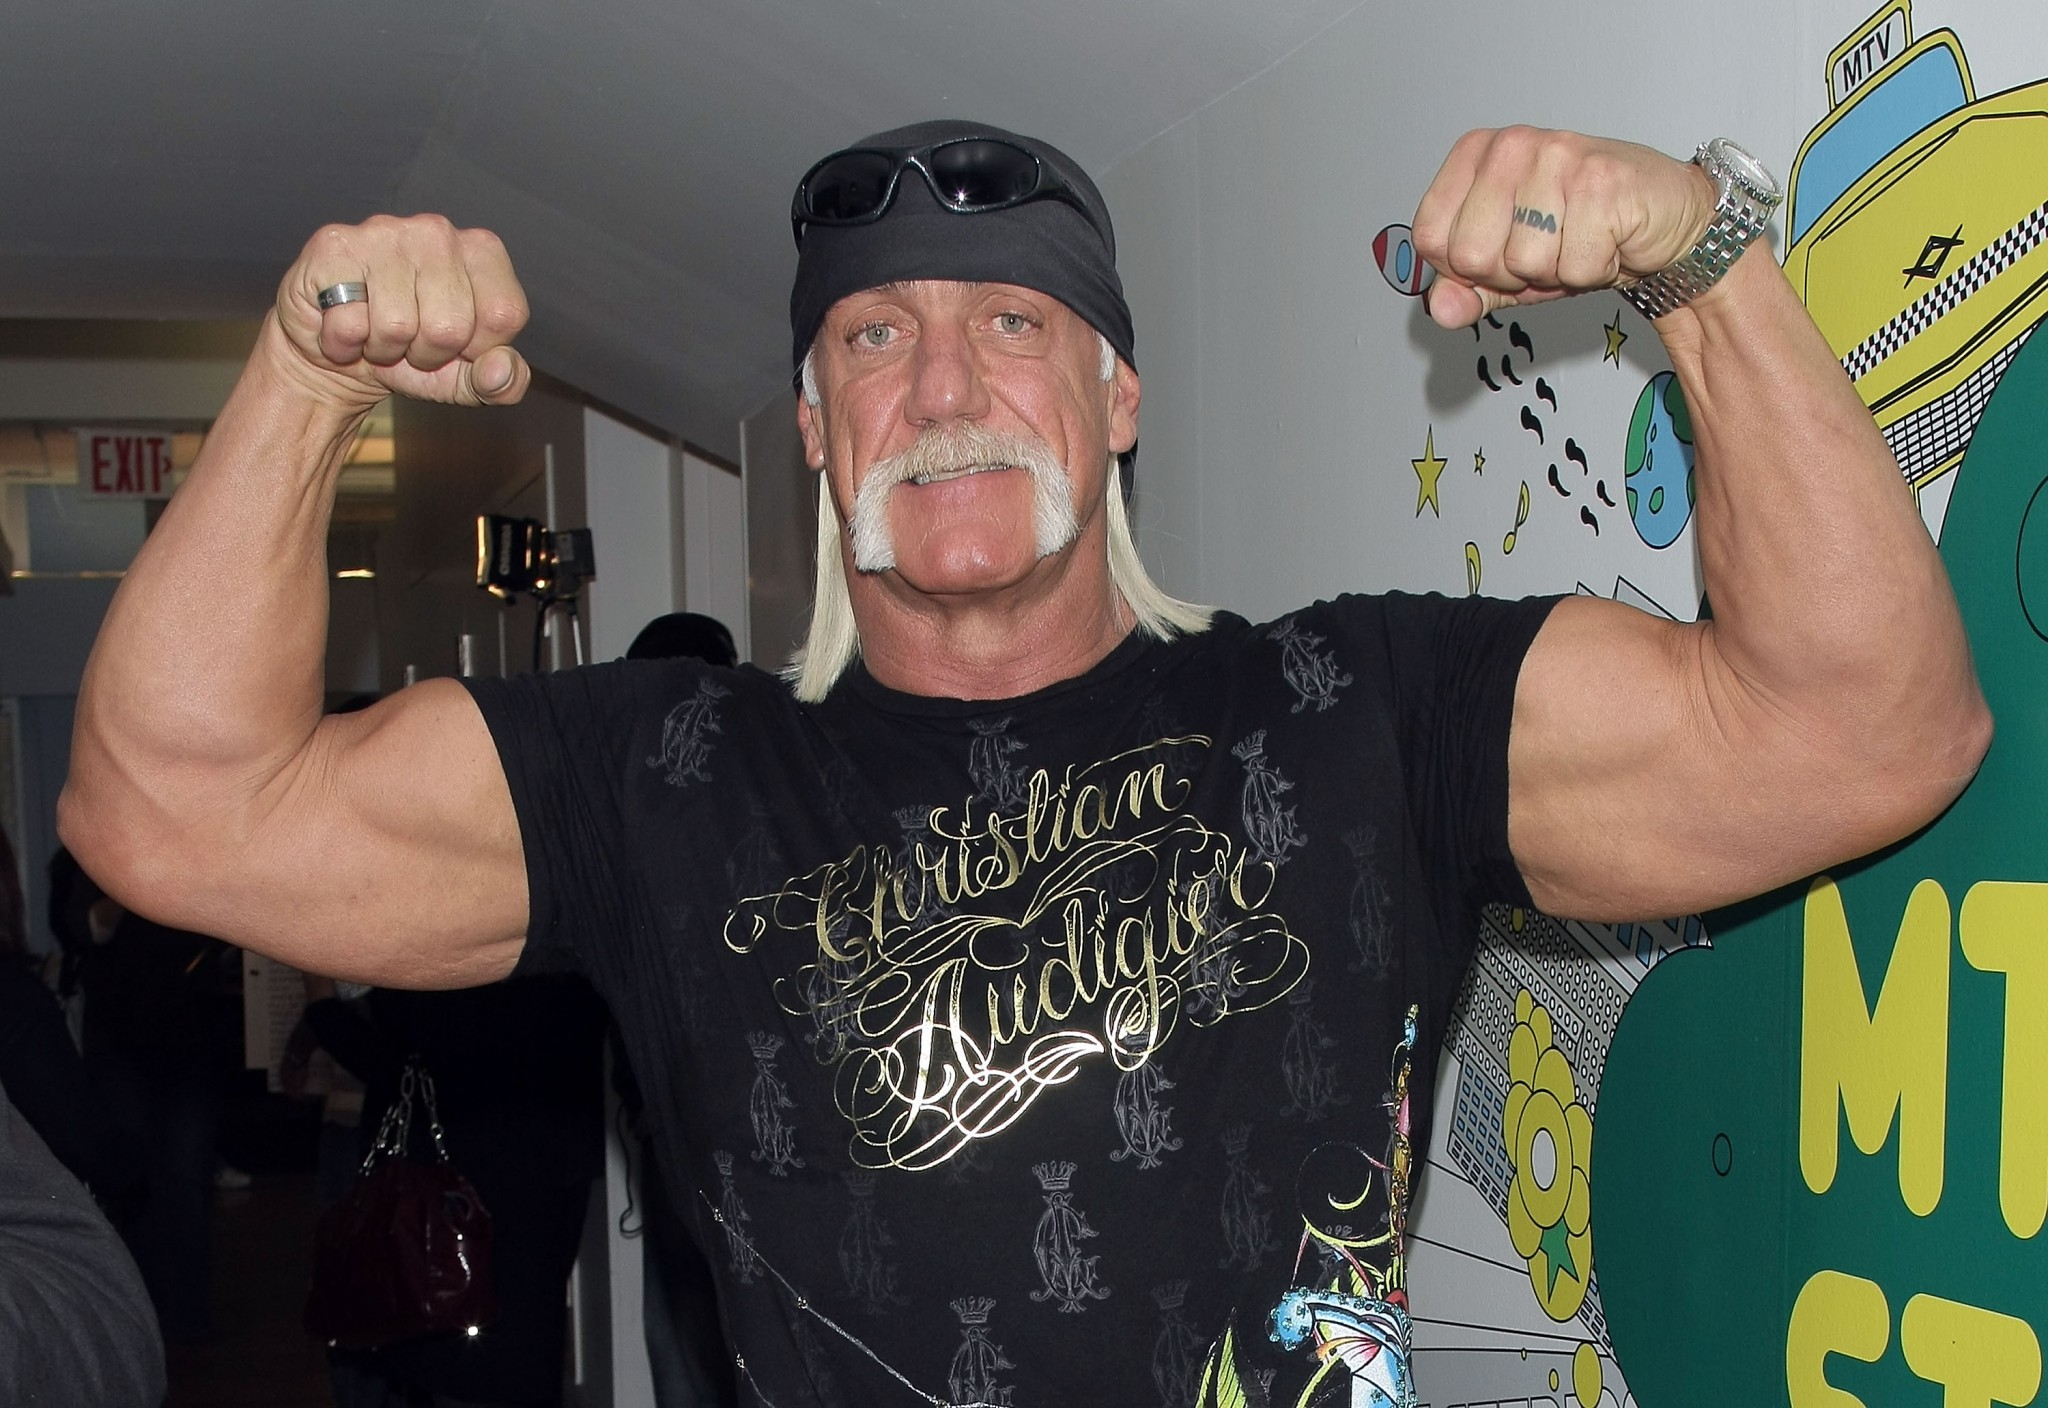 Hulk Hogan has launched a $100m lawsuit against Gawker